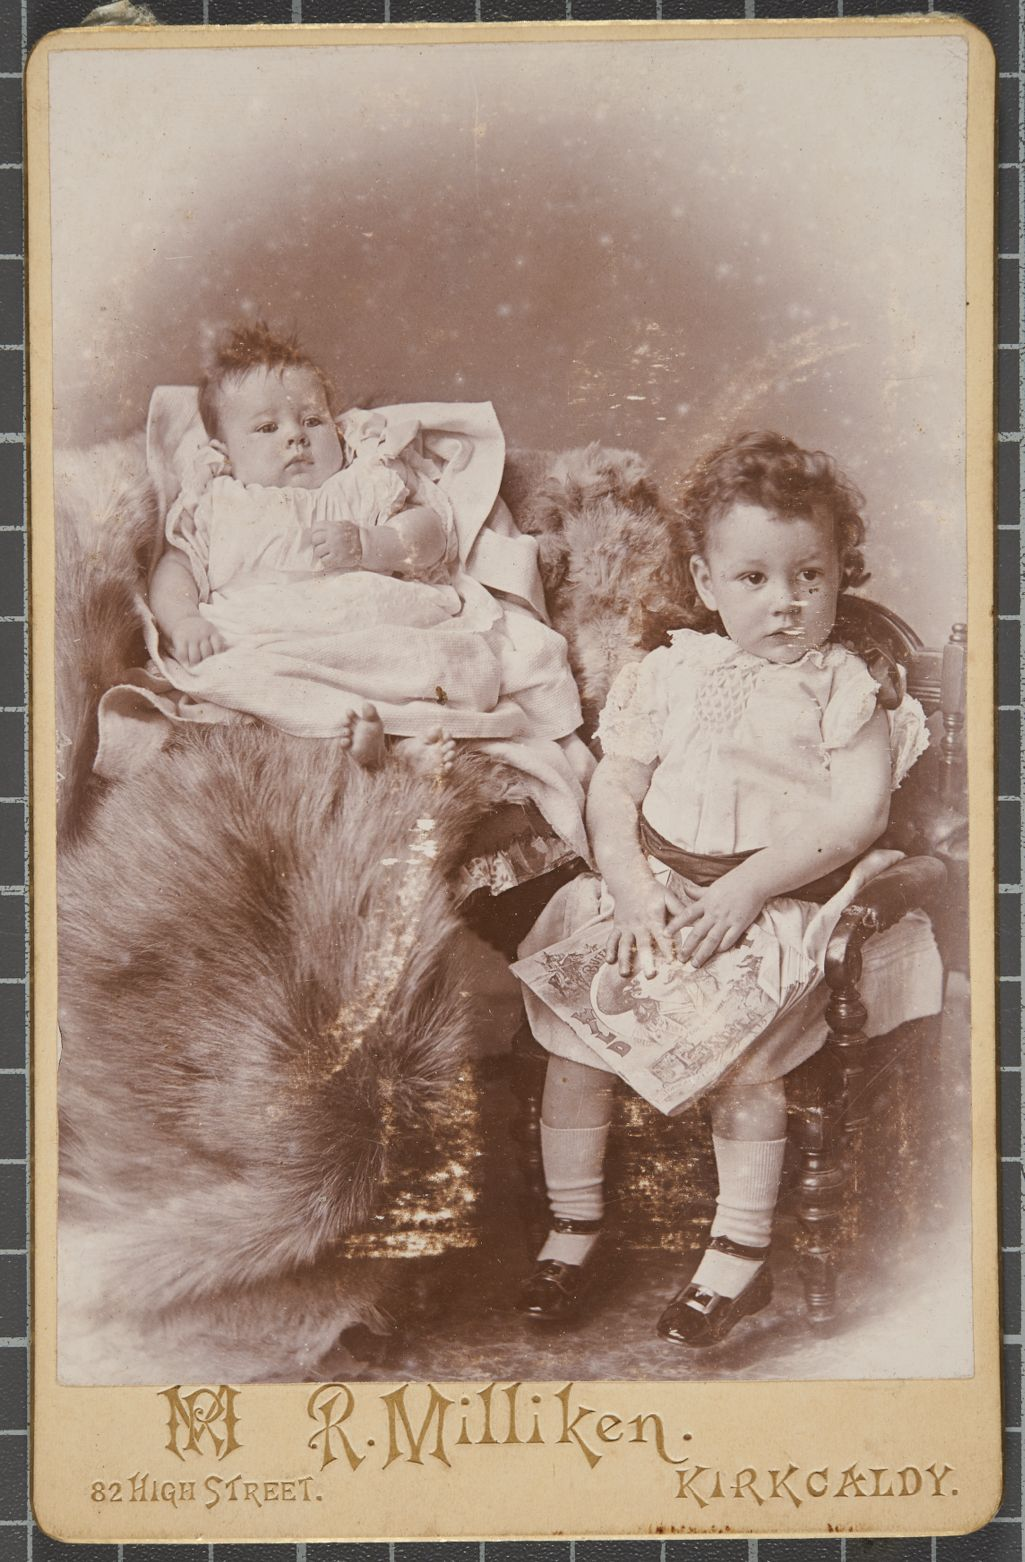 Studio portrait of a young boy seated next to another infant posed on a fur rug.